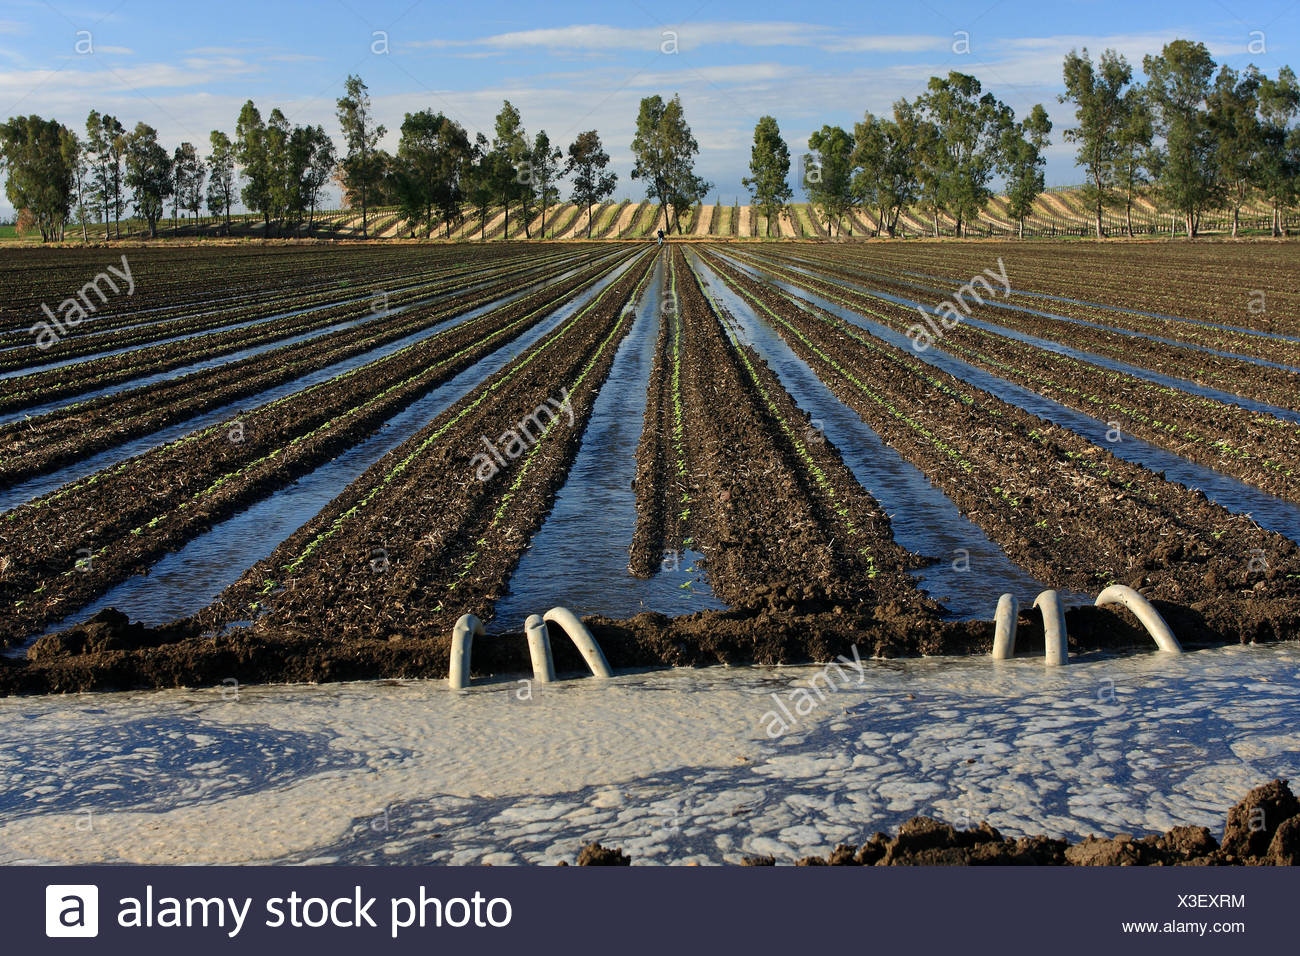 Field of seedling sunflowers being furrow irrigated. Siphon tubes transfer water from the irrigation ditch to the furrows. - Stock Image